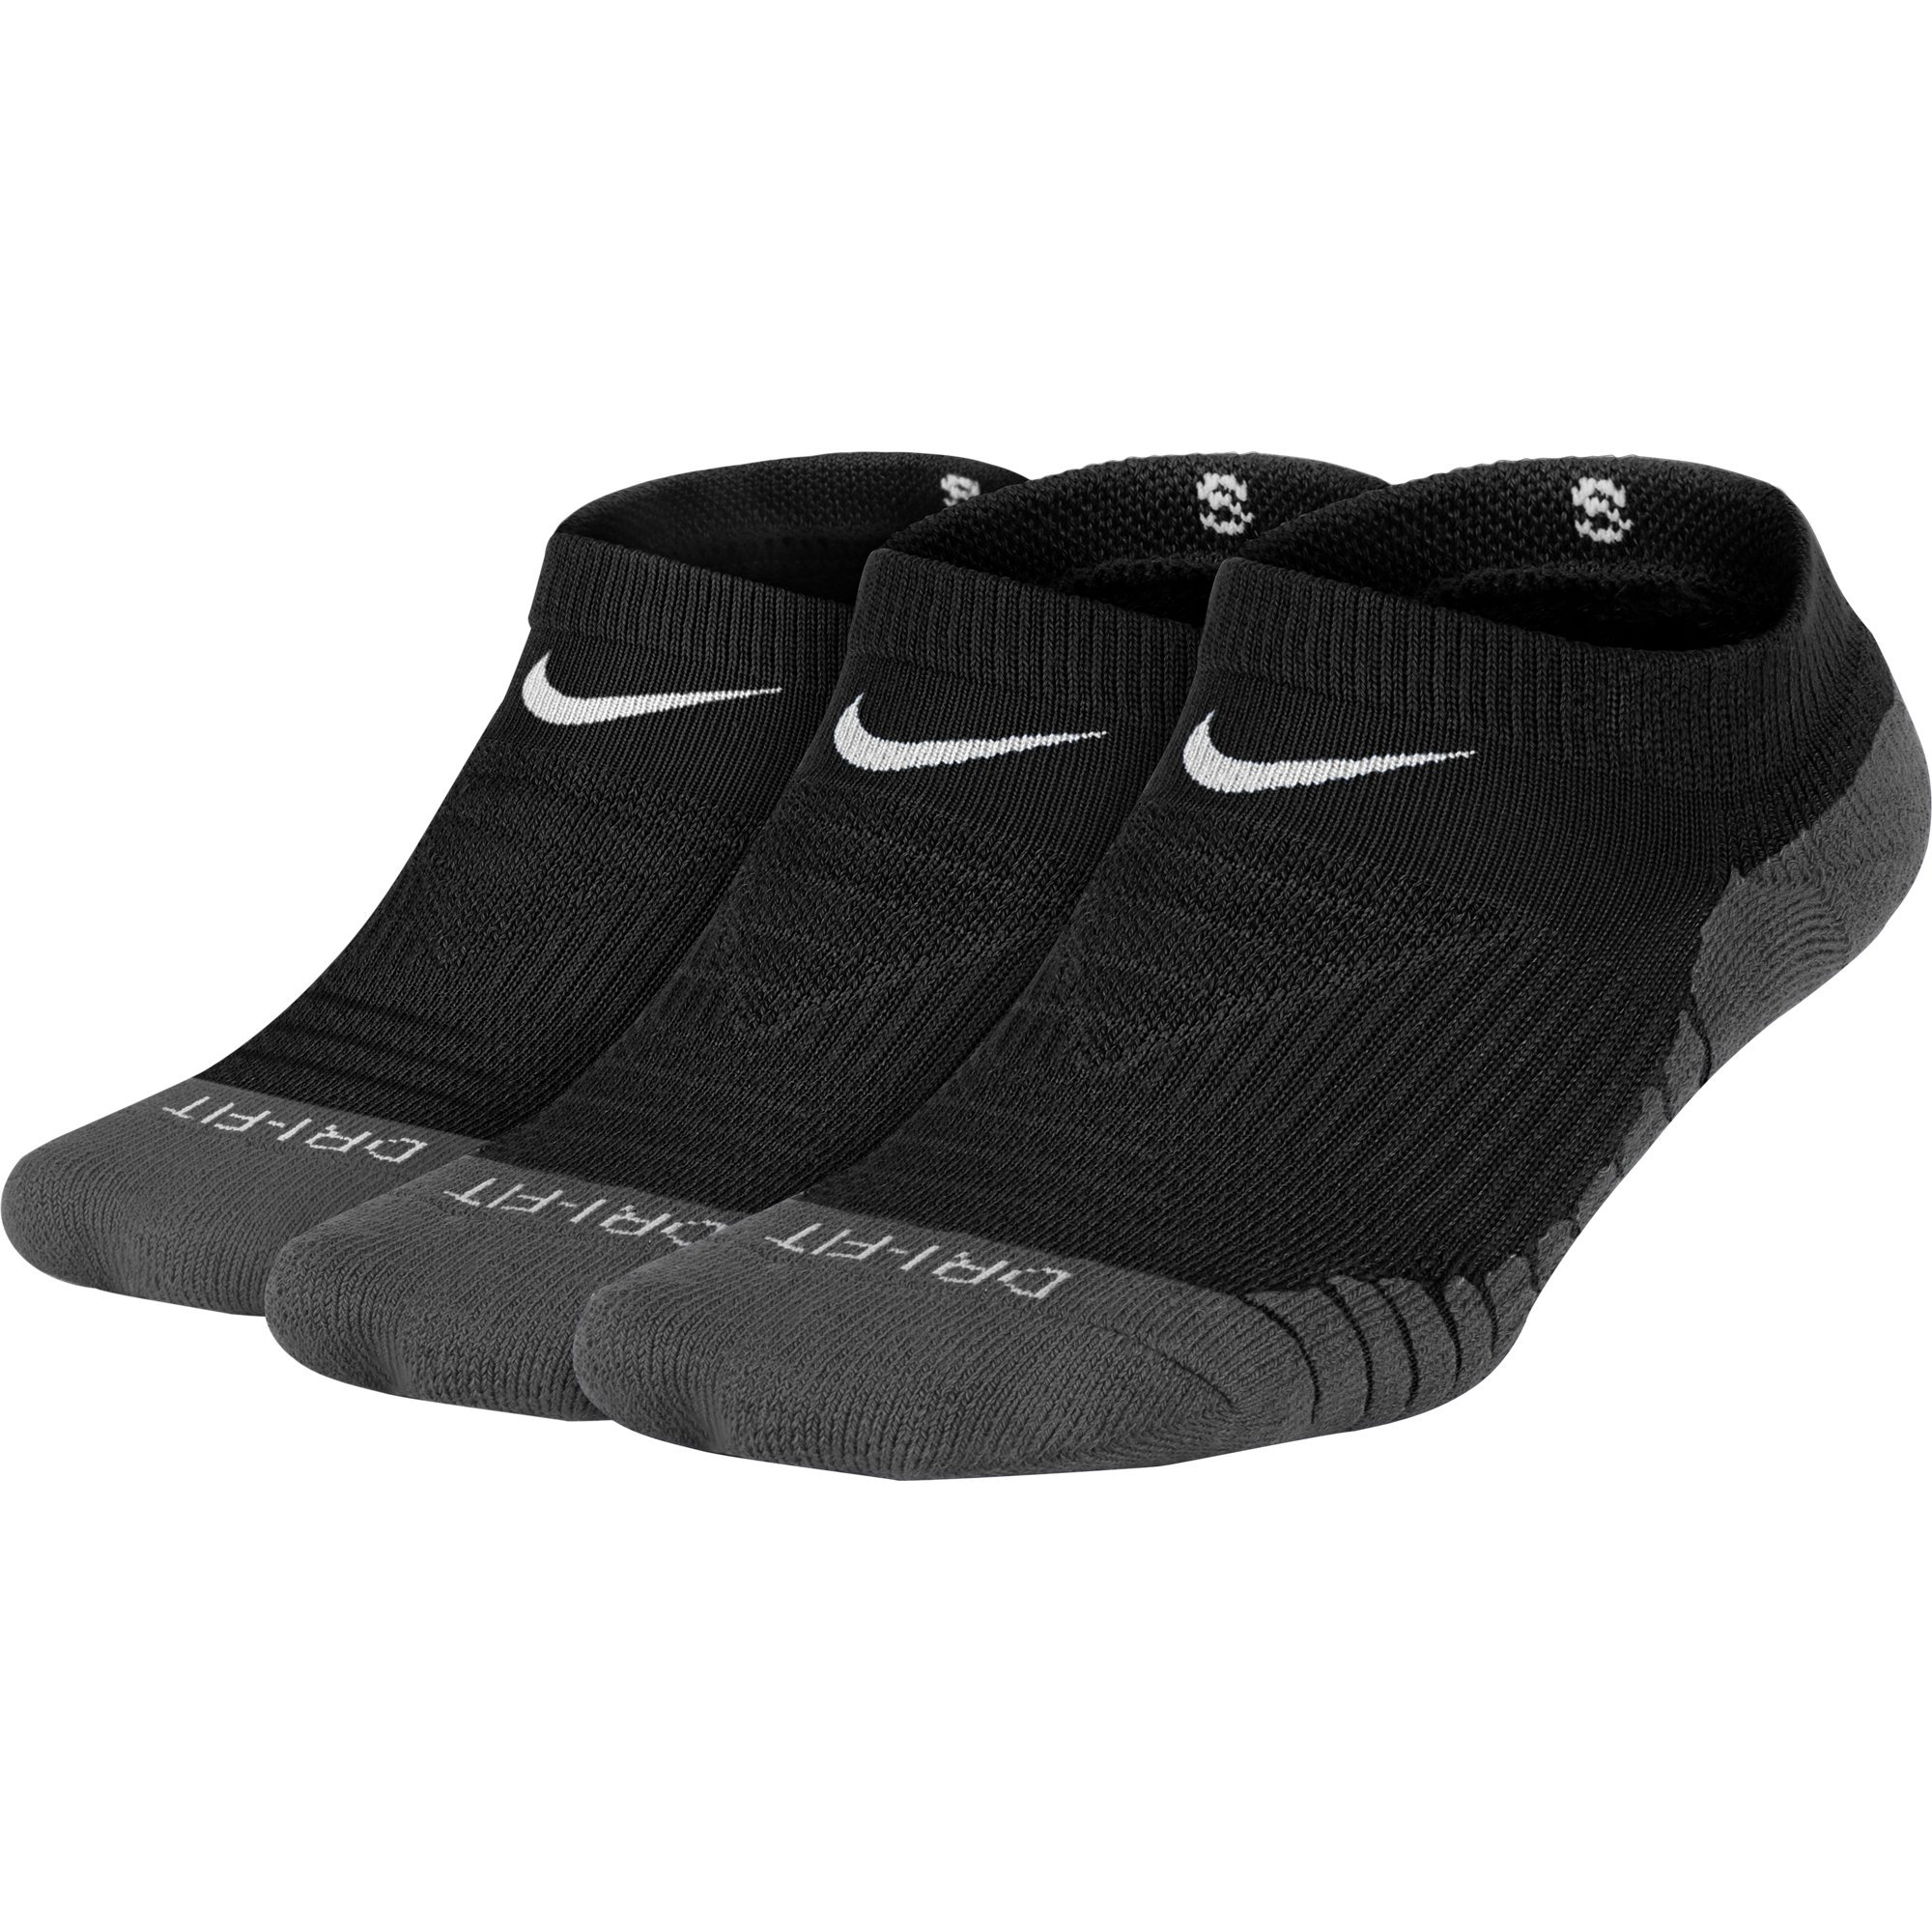 Nike Kids' Dry Cushion No Show Socks (3 Pair), Girl's & Boy's Socks with Impact Absorption, Black/Anthractie/White, S by Nike